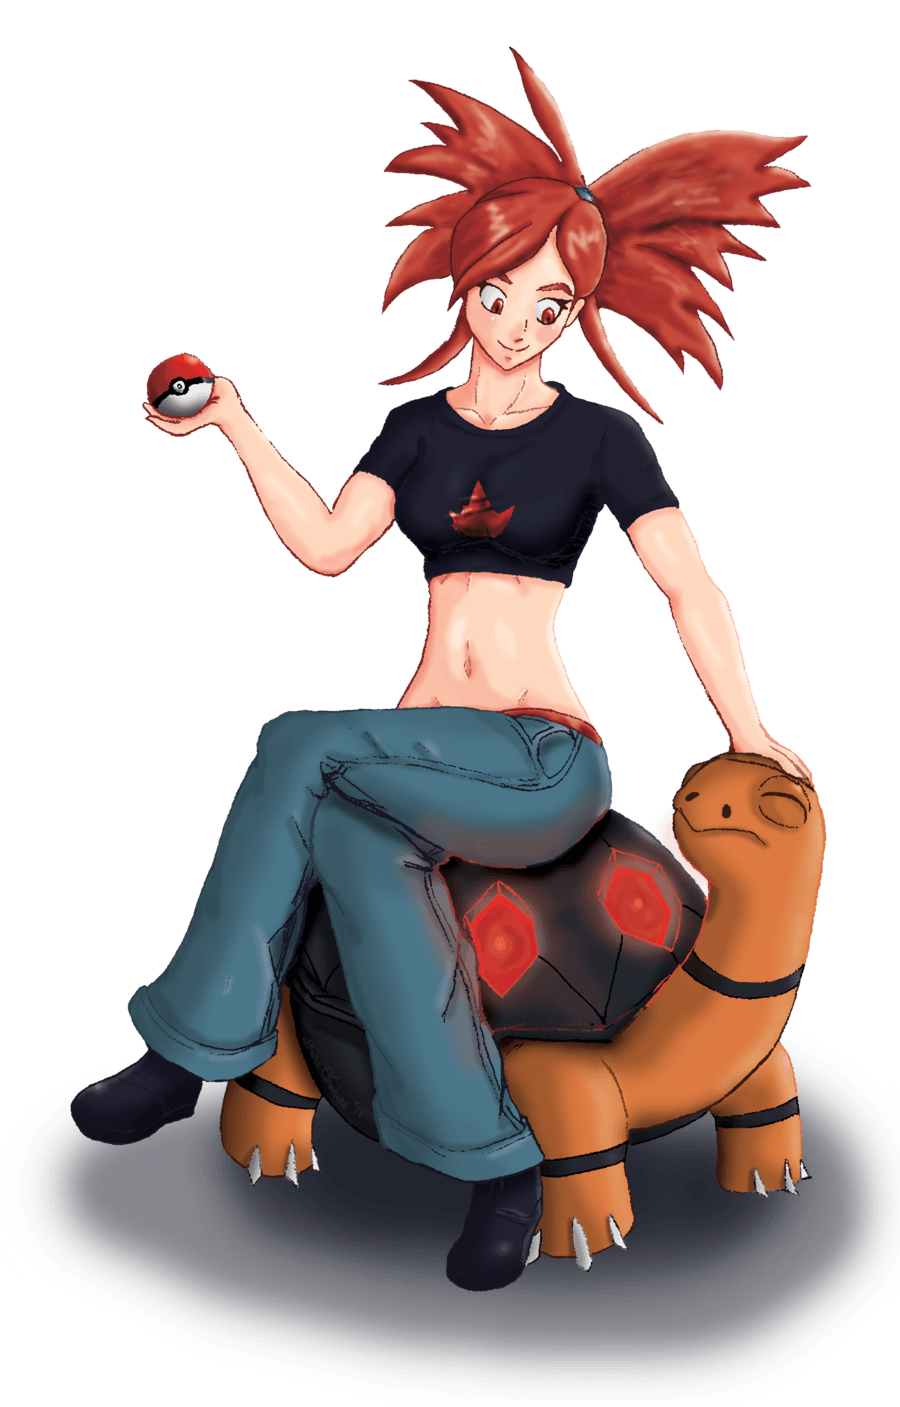 and Torkoal by Flameheadshero on DeviantArt